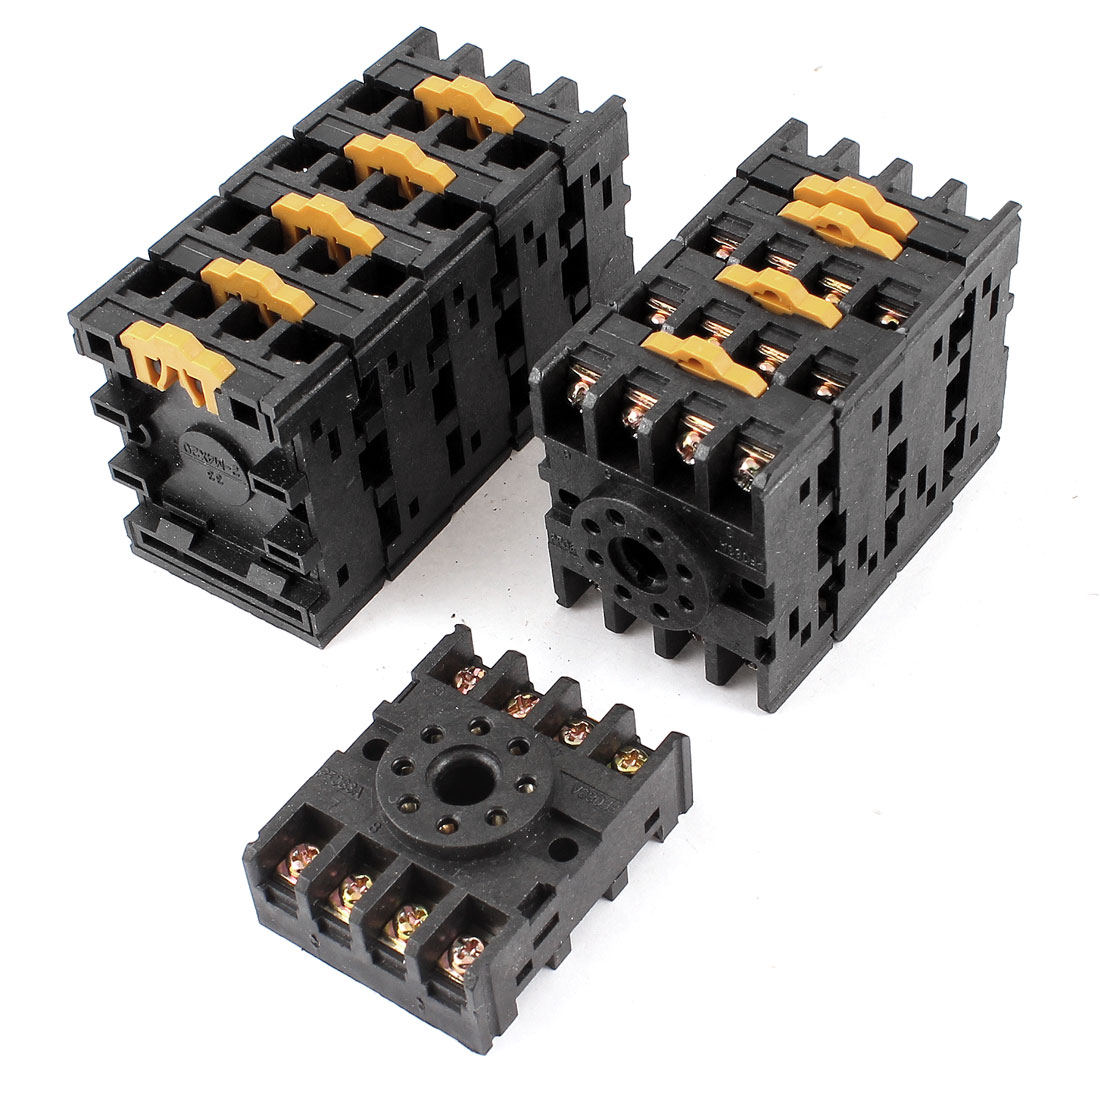 10pcs PF083A 35mm DIN Rail Relay Socket Base 8-Pin for JTX-2C JQX-10F